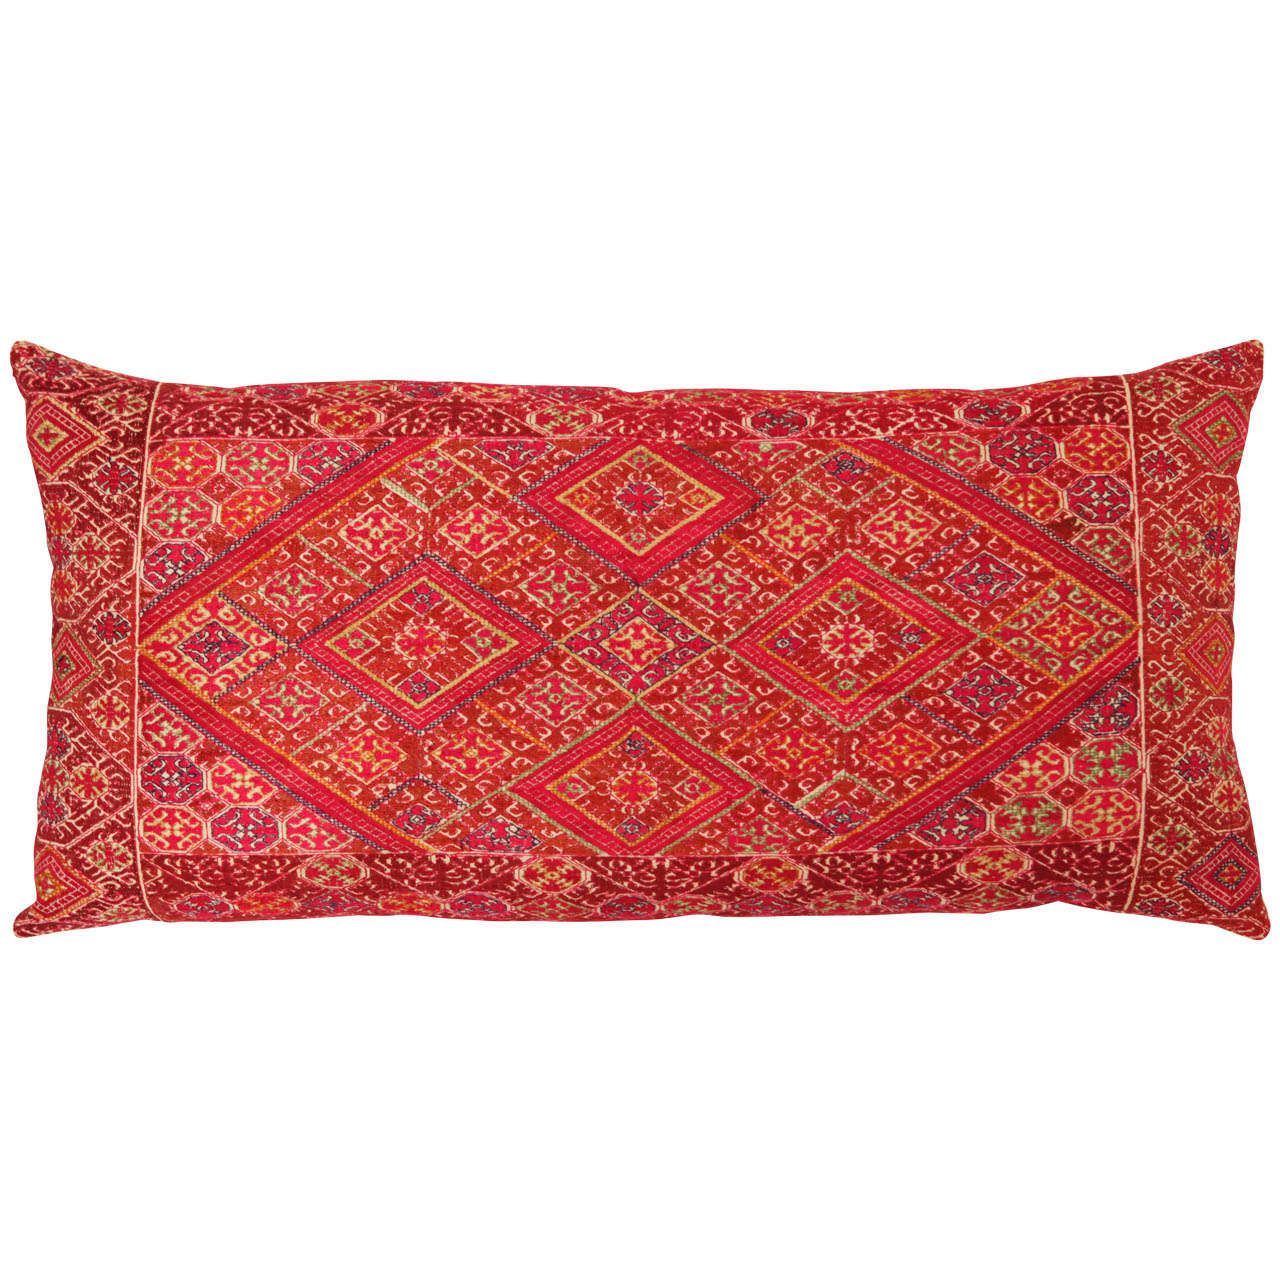 Swat valley embroidered pillow mores of and furniture